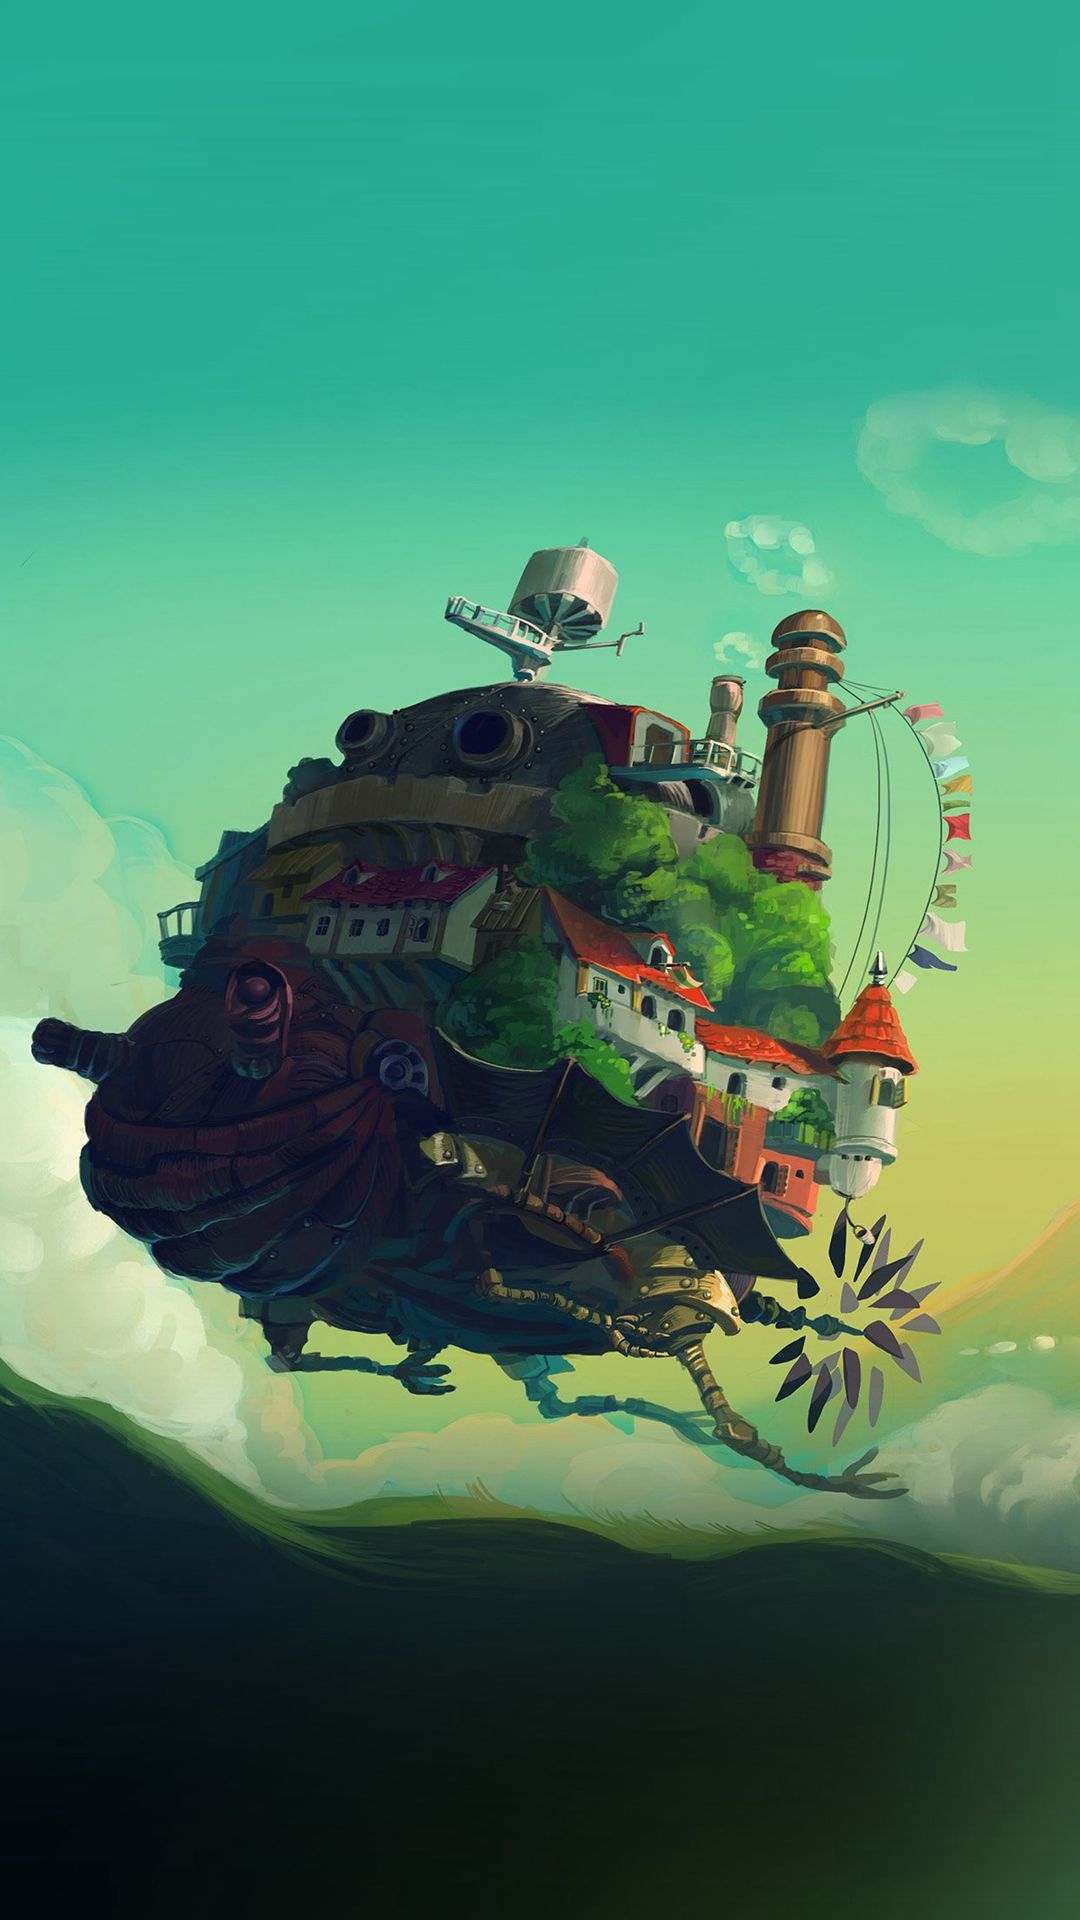 Studio Ghibli Castle Anime Green Peace Art Illustration Iphone 6 Plus Wallpaper Howls Moving Castle Wallpaper Howls Moving Castle Studio Ghibli